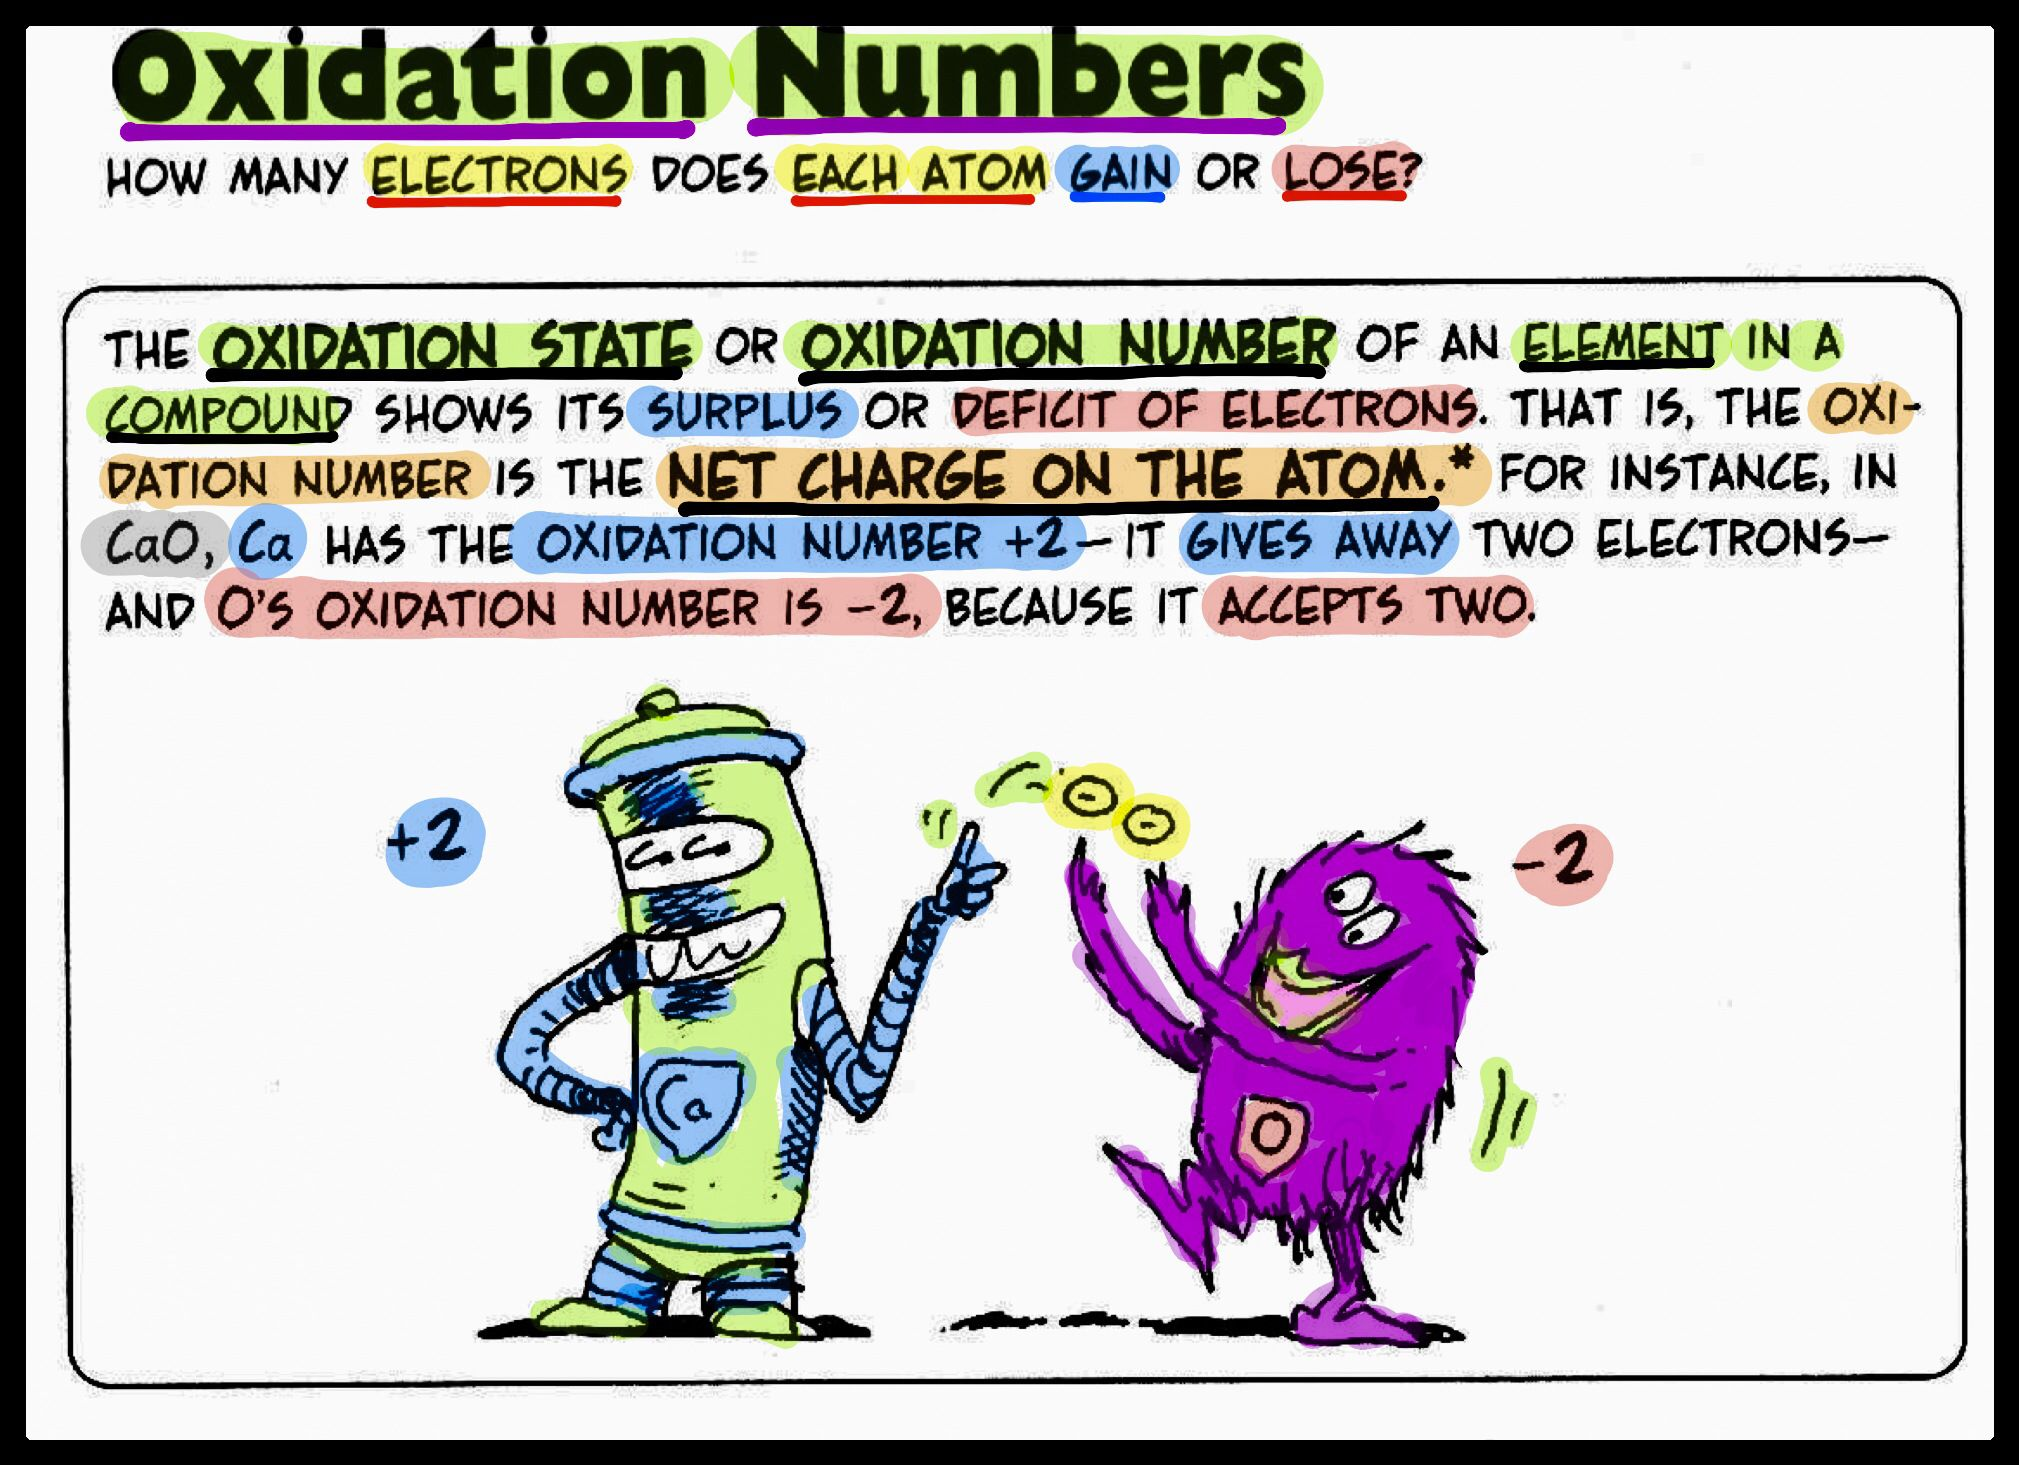 Oxidation numbers chemistry biochemistry physics art oxidation numbers chemistry biochemistry gamestrikefo Image collections